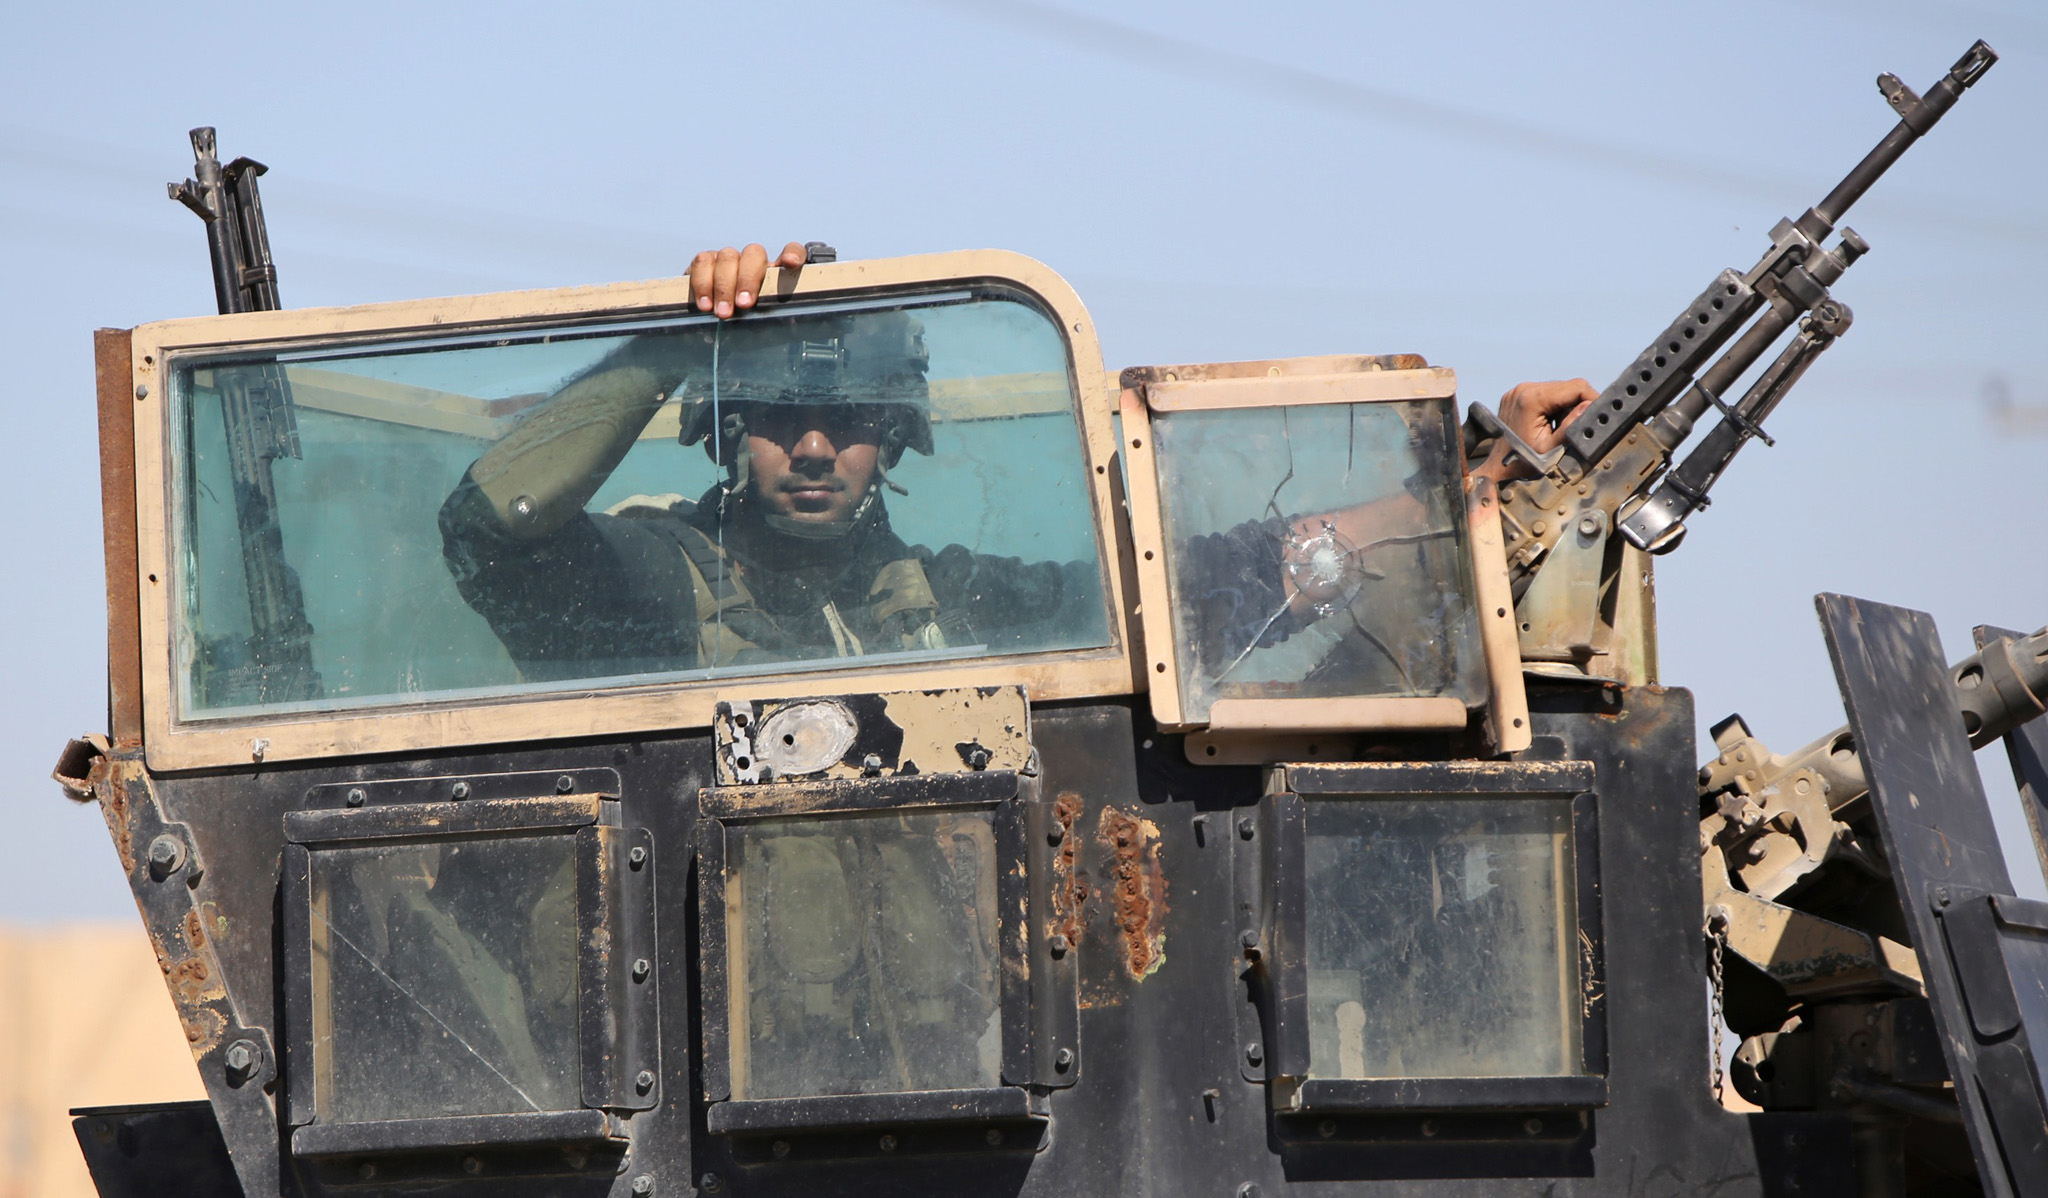 A member of the Iraqi government forces sits in an armed military vehicle on the outskirts of the northern city of Tikrit as they prepare to launch a military operation to take control of the city from Islamic State (IS) group fighters.